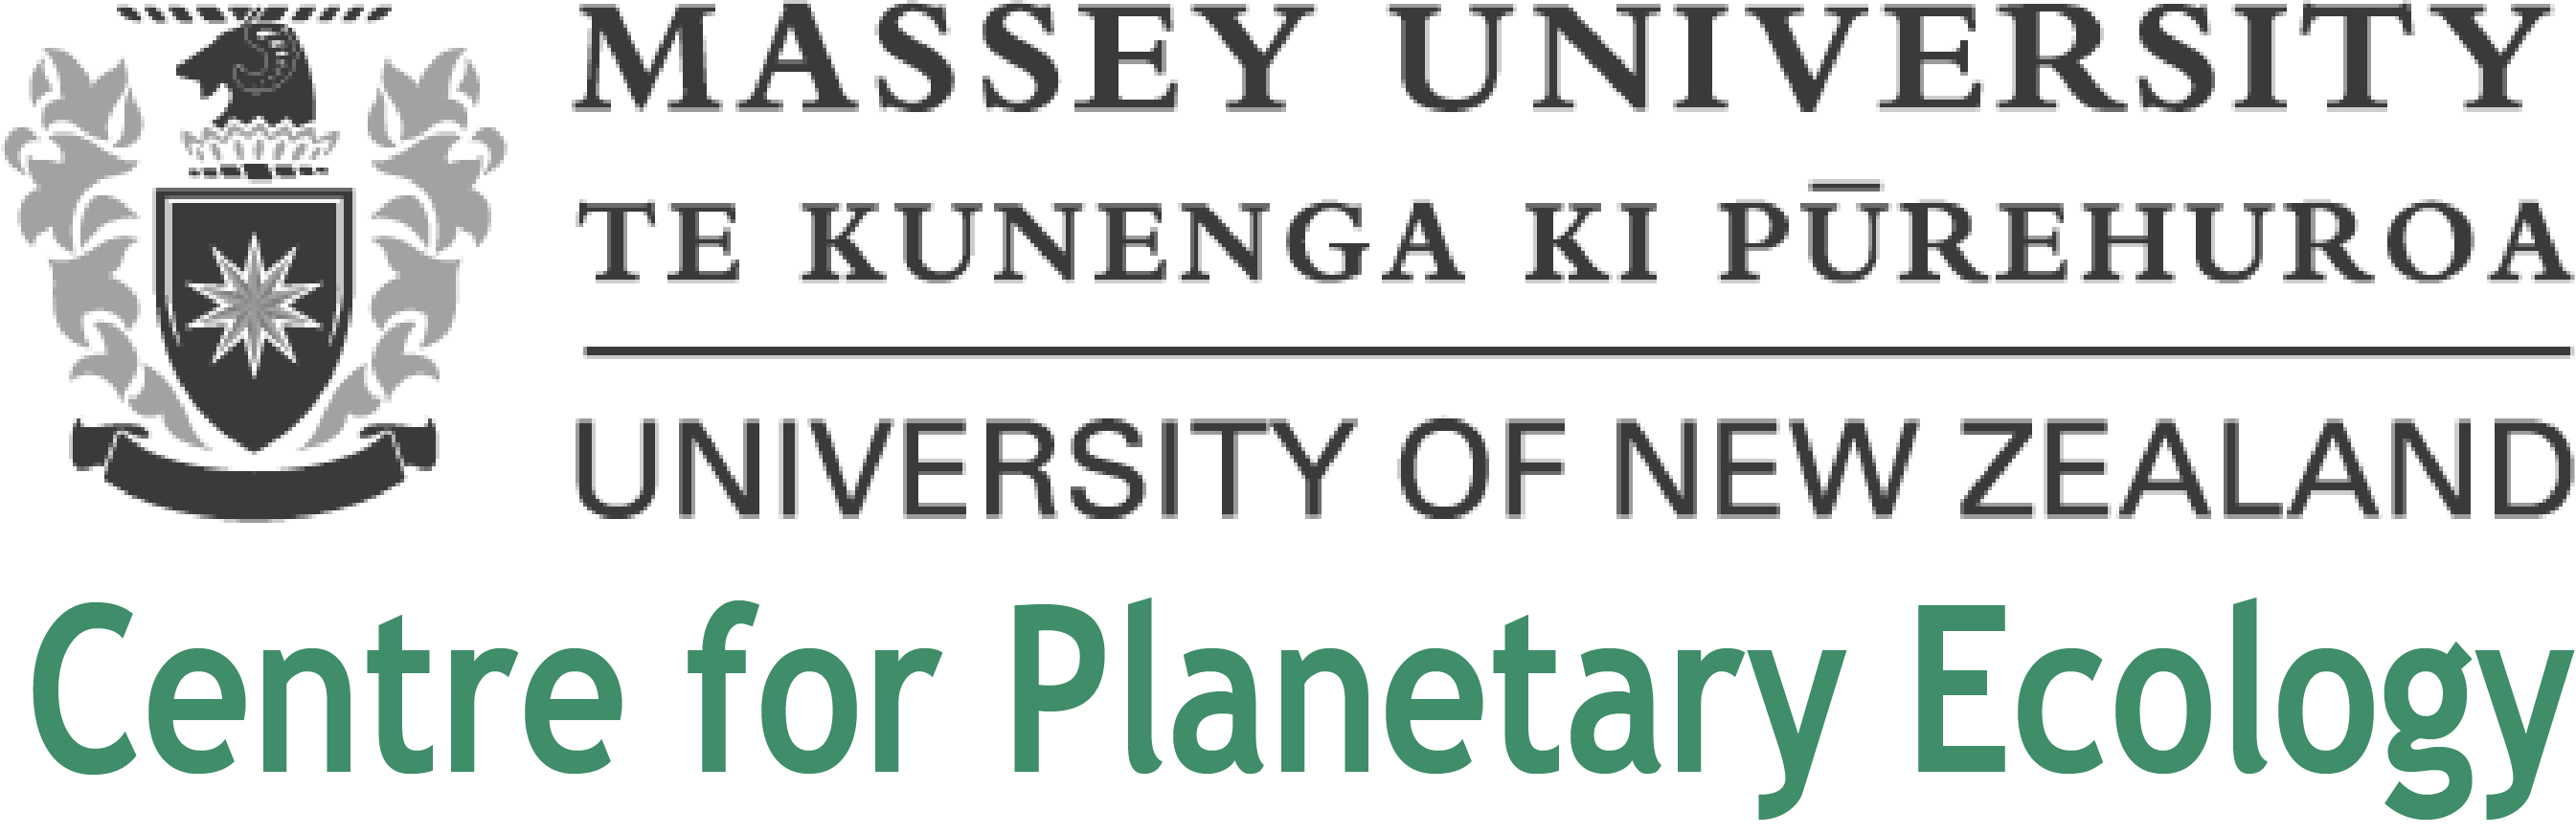 Massey University Centre for Planetary Ecology